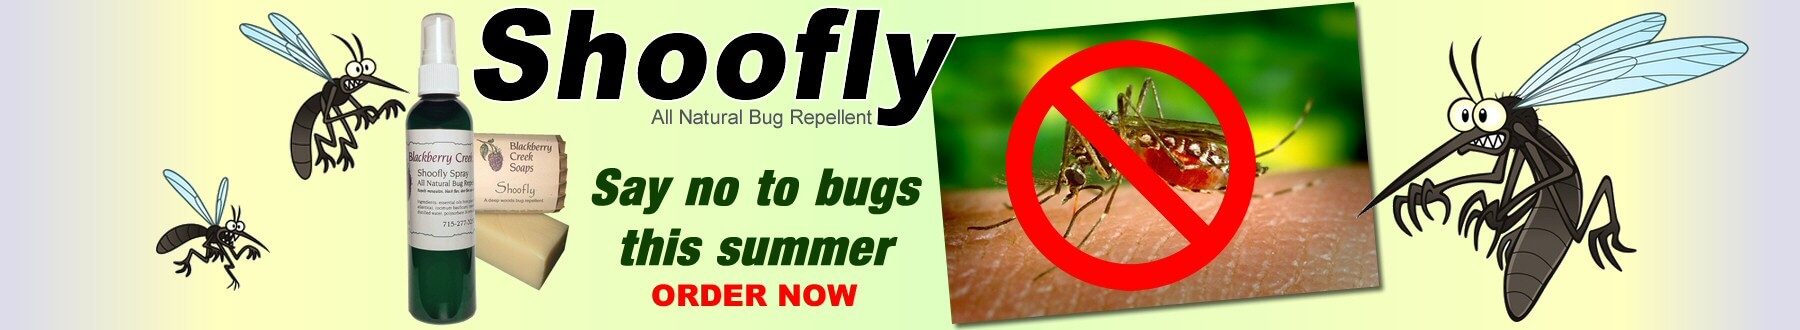 Shoofly All Natural Bug Repellant | Say No To Bugs This Summer ORDER NOW